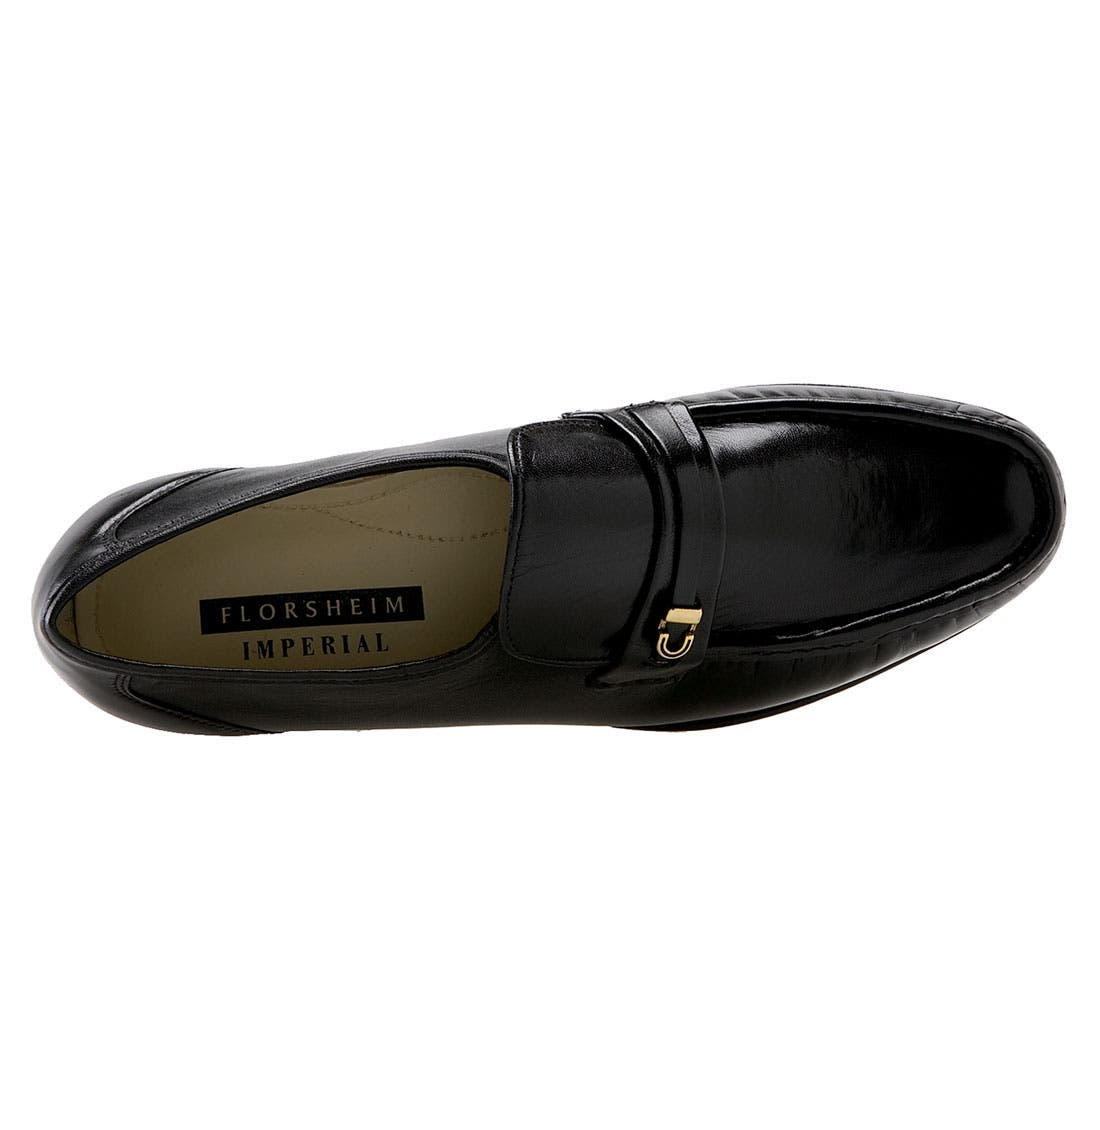 Alternate Image 3  - Florsheim 'Como Imperial' Roll-Front Moccasin